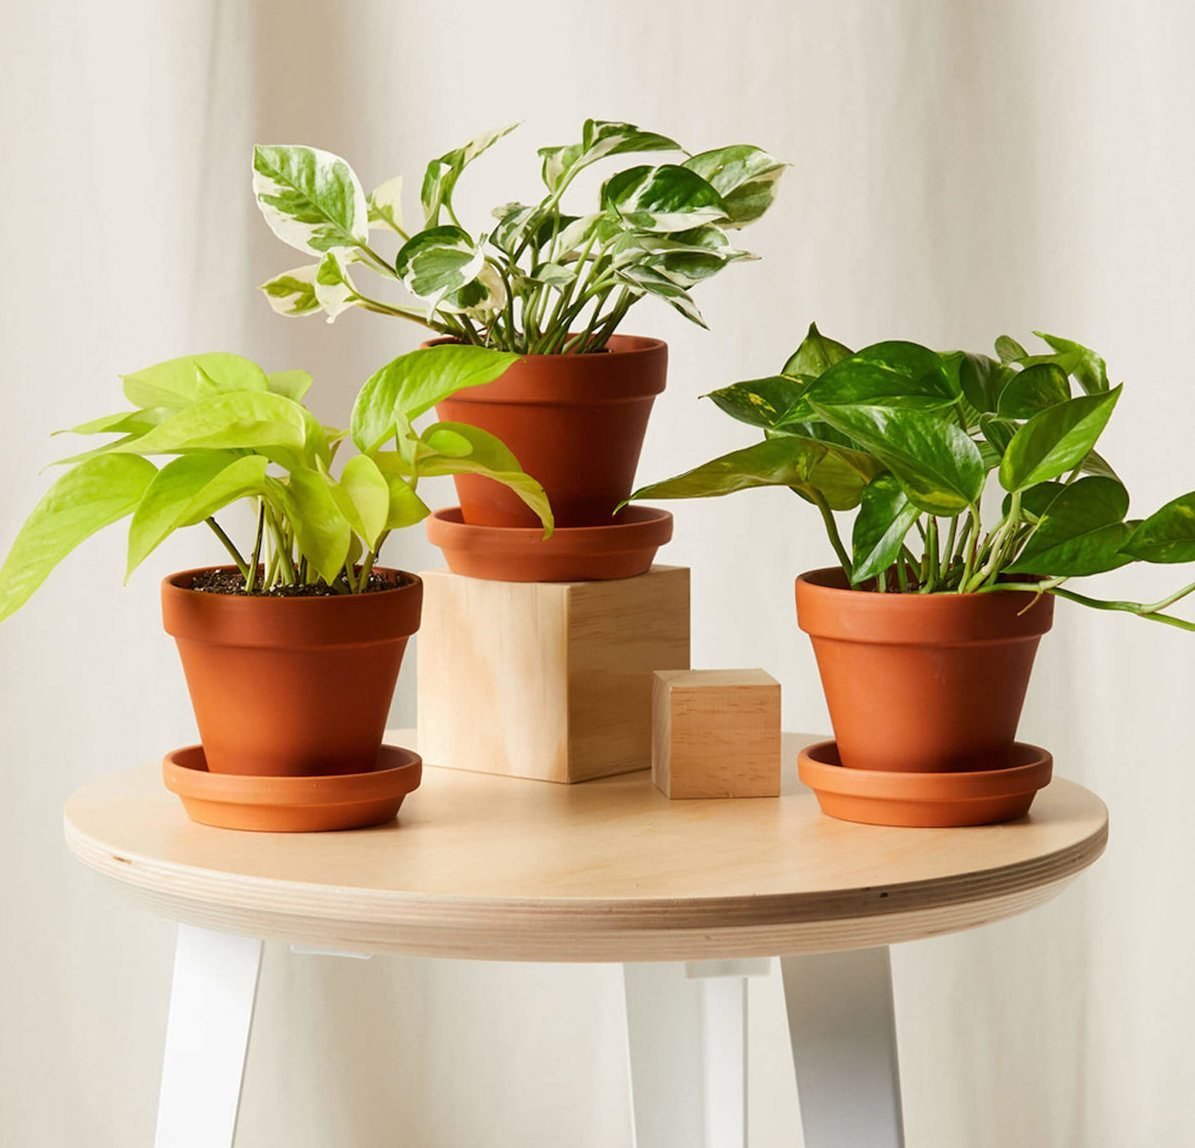 The Top 10 Dorm Room Plants for College Students